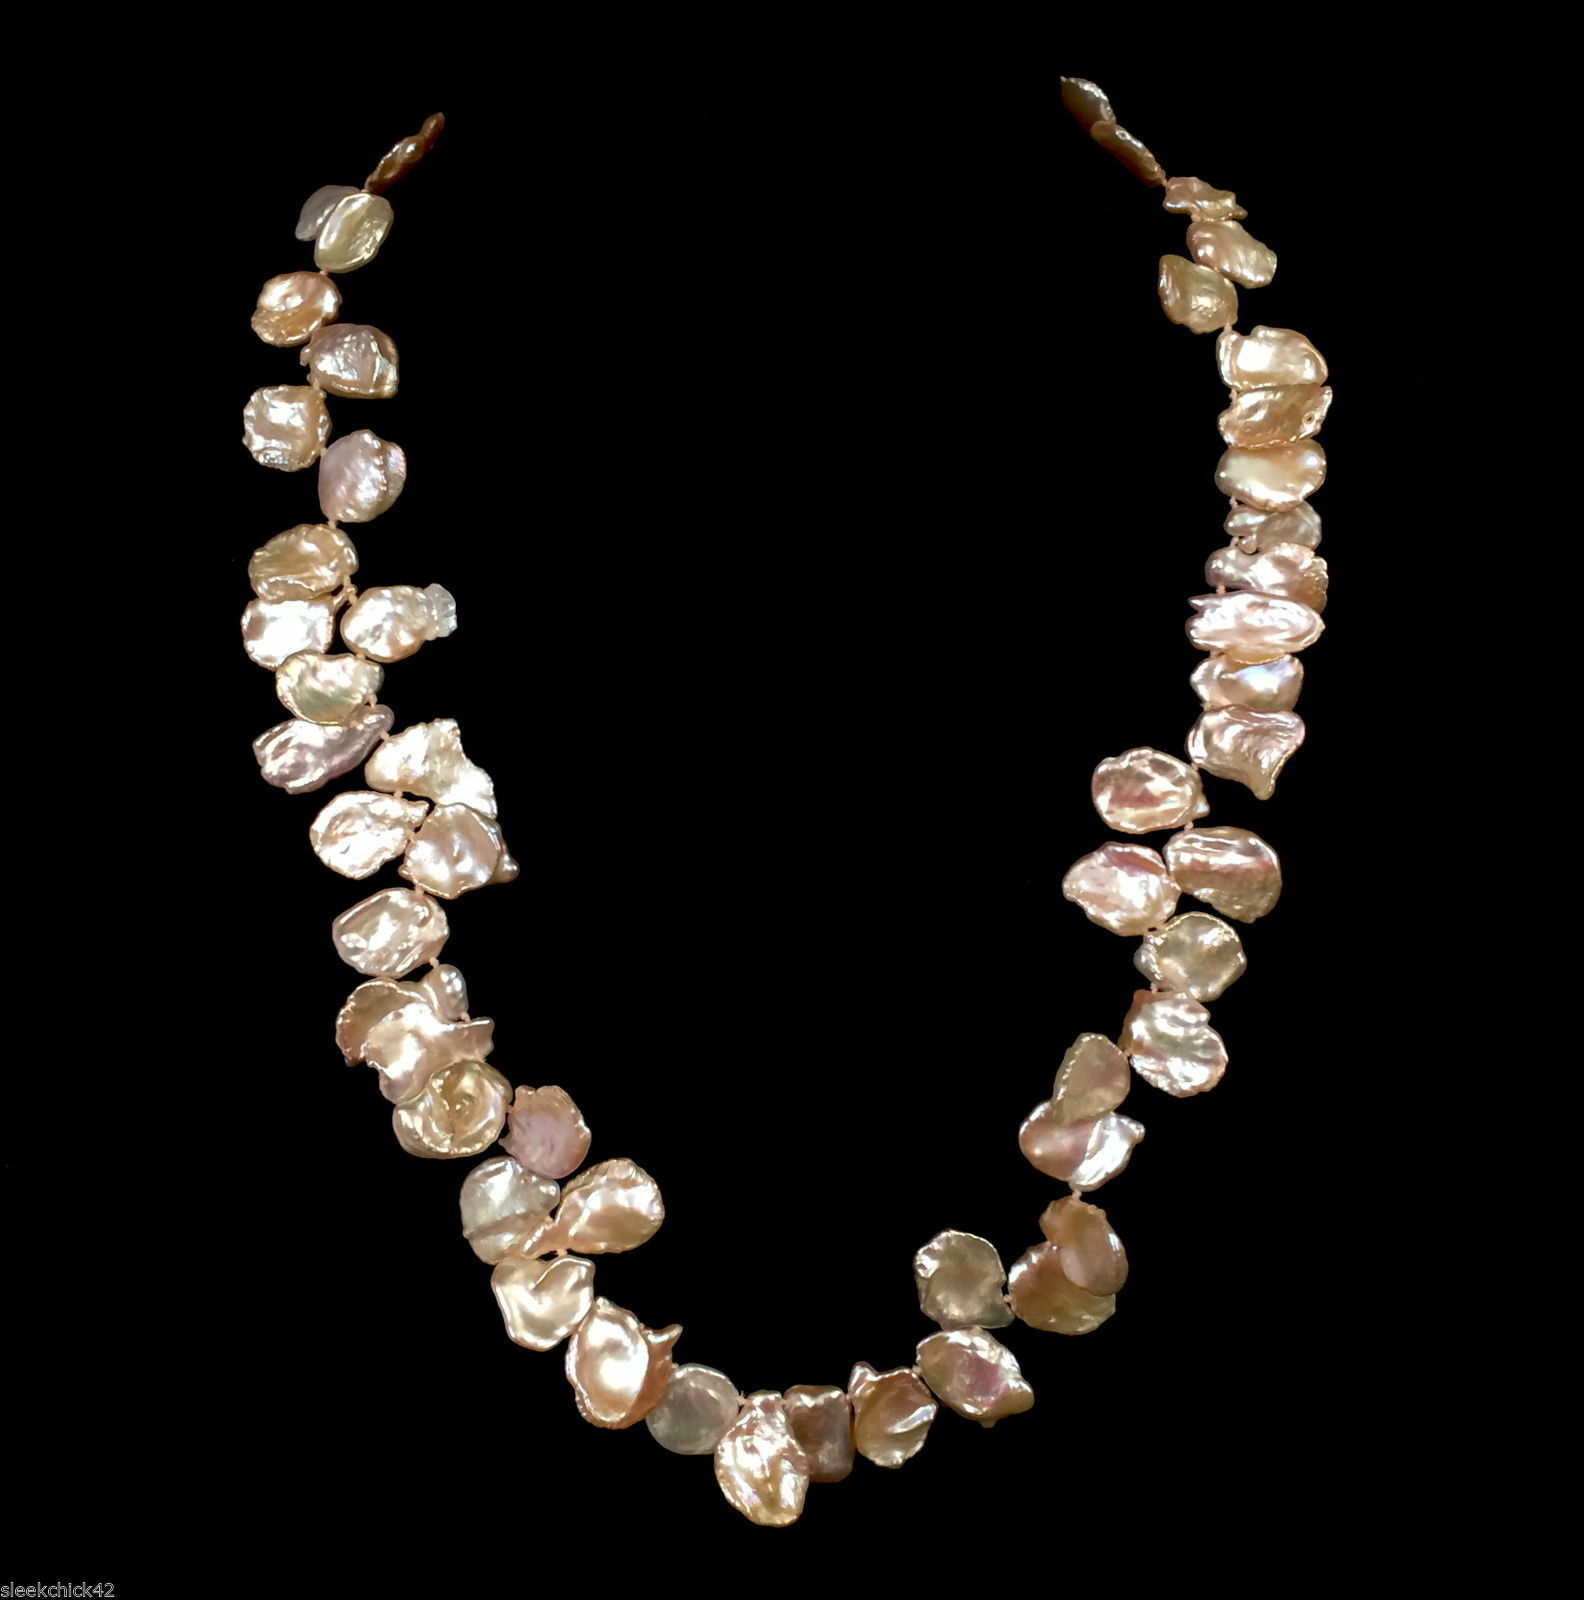 unique piece handmade, Handmade champagne-colored freshwater pearl necklace with designer intermediate